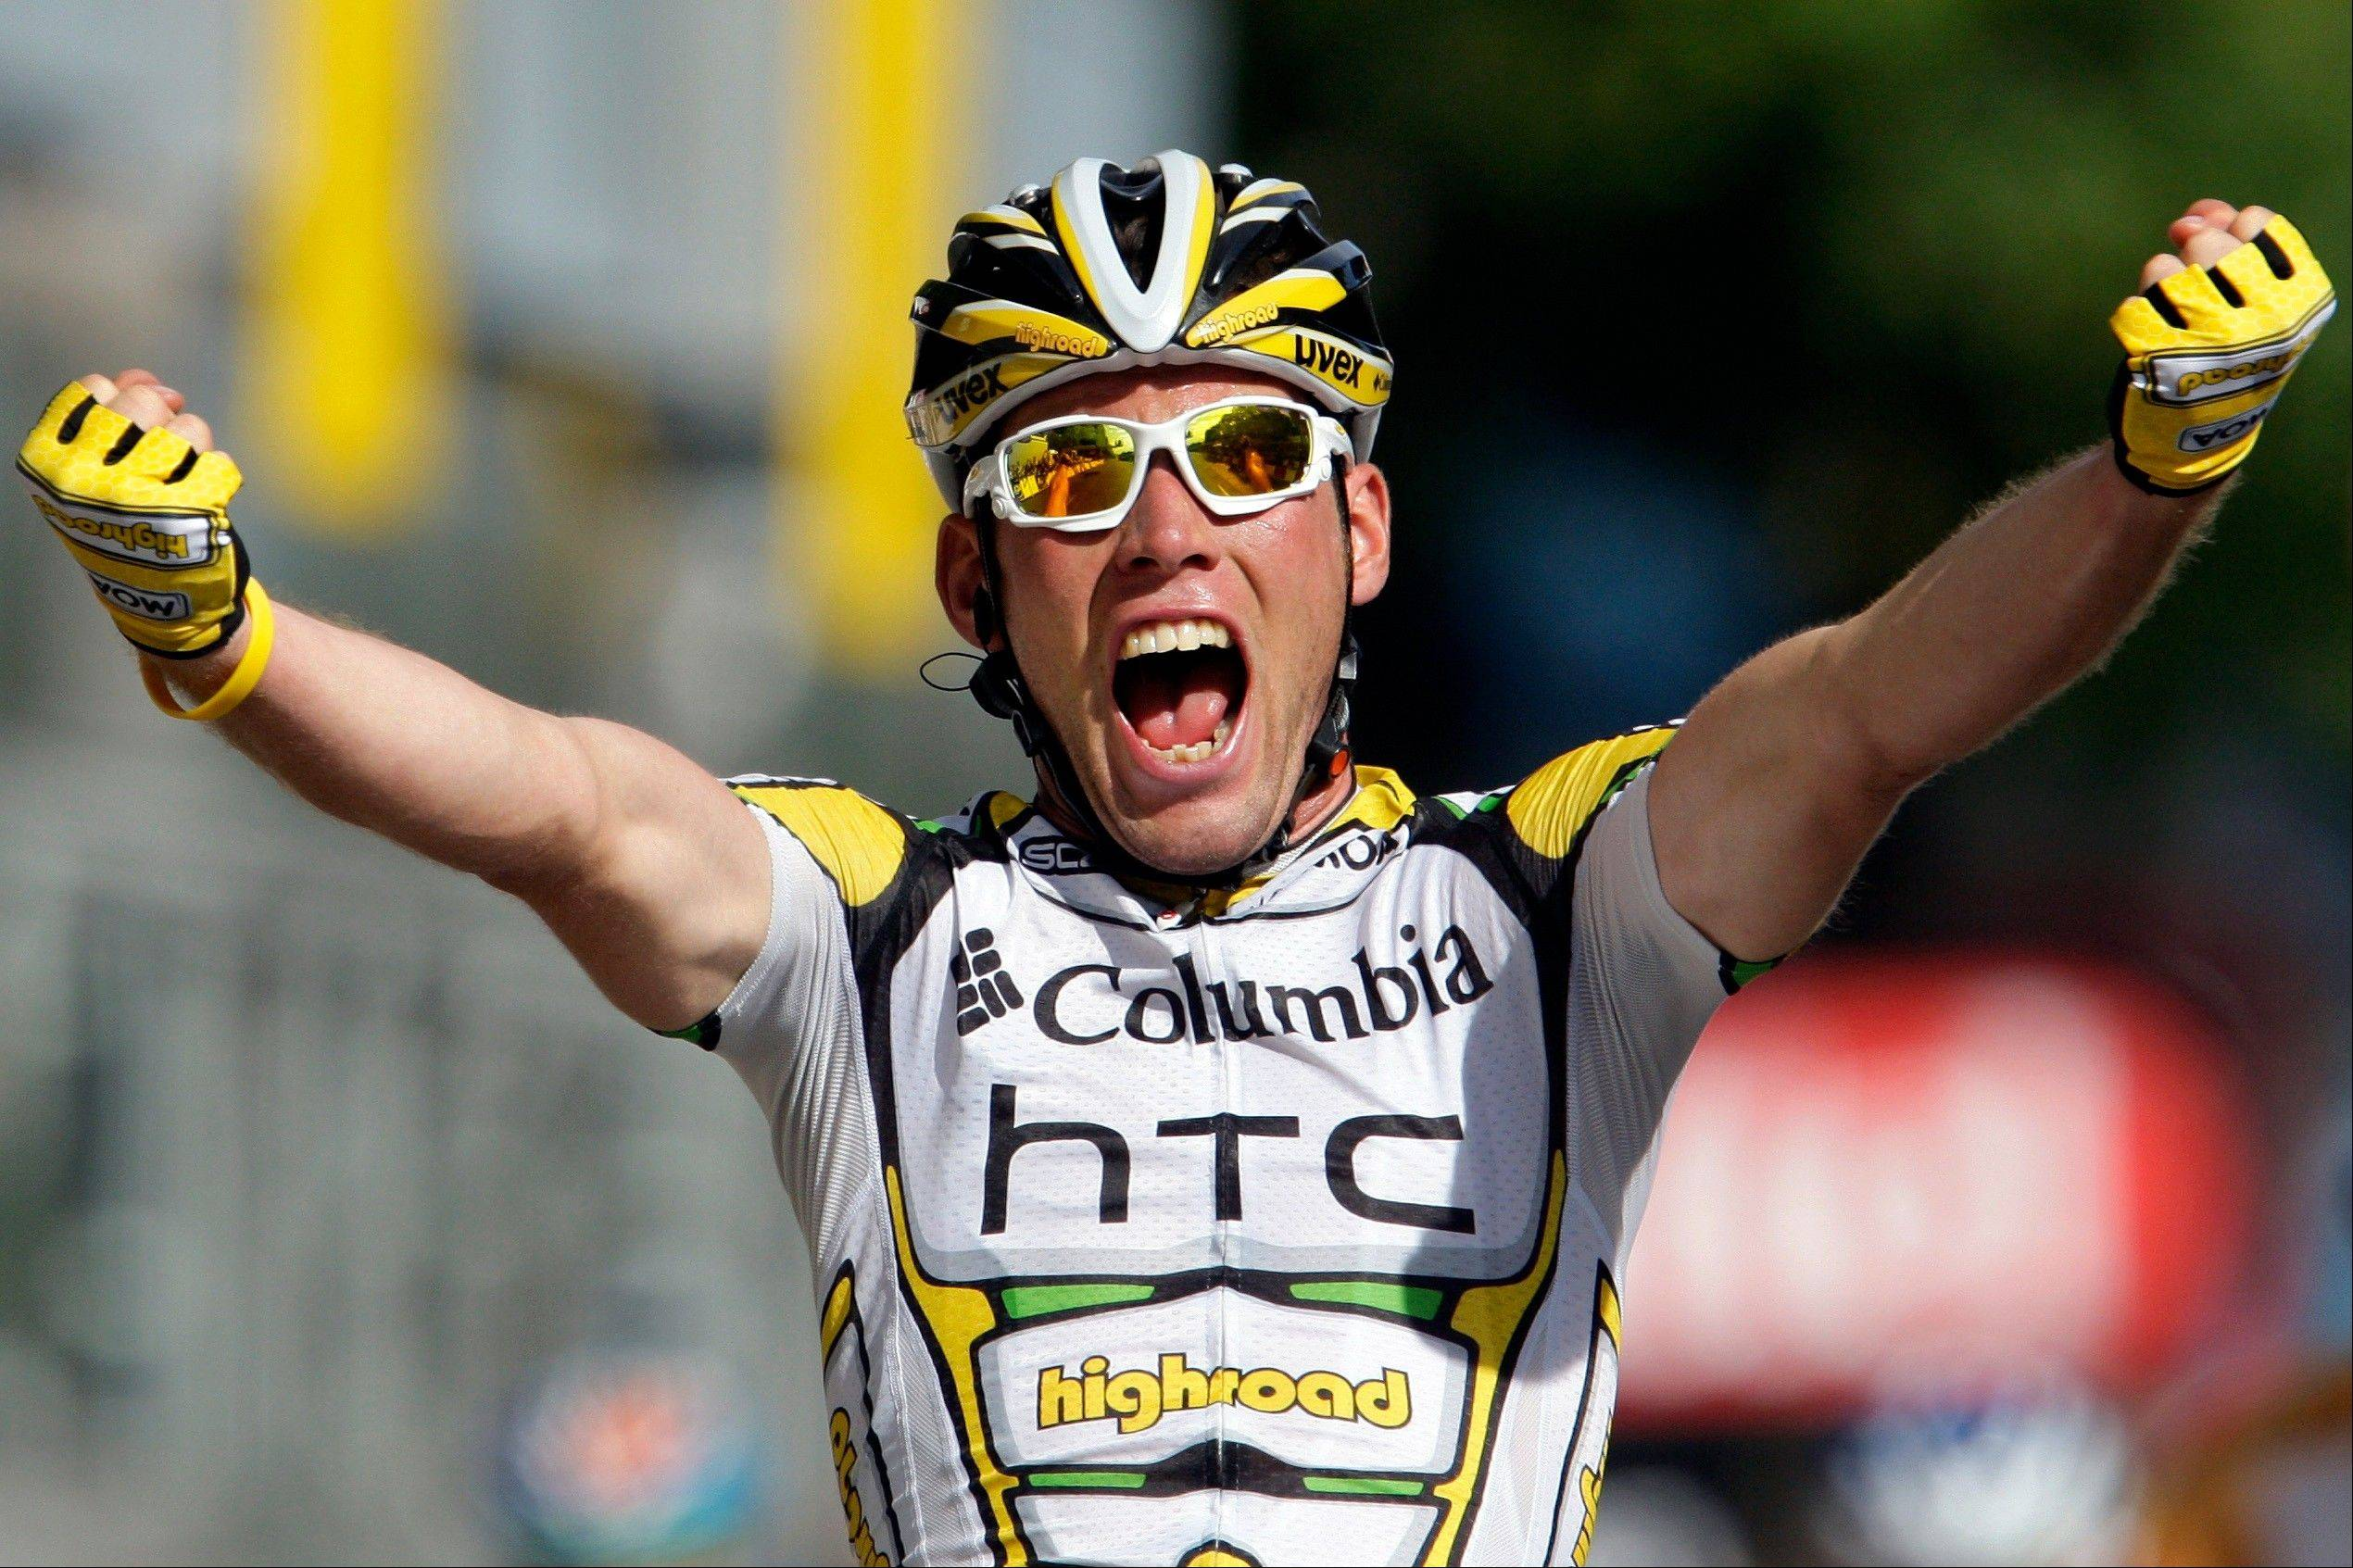 Mark Cavendish is always a favorite to win sprint stages.